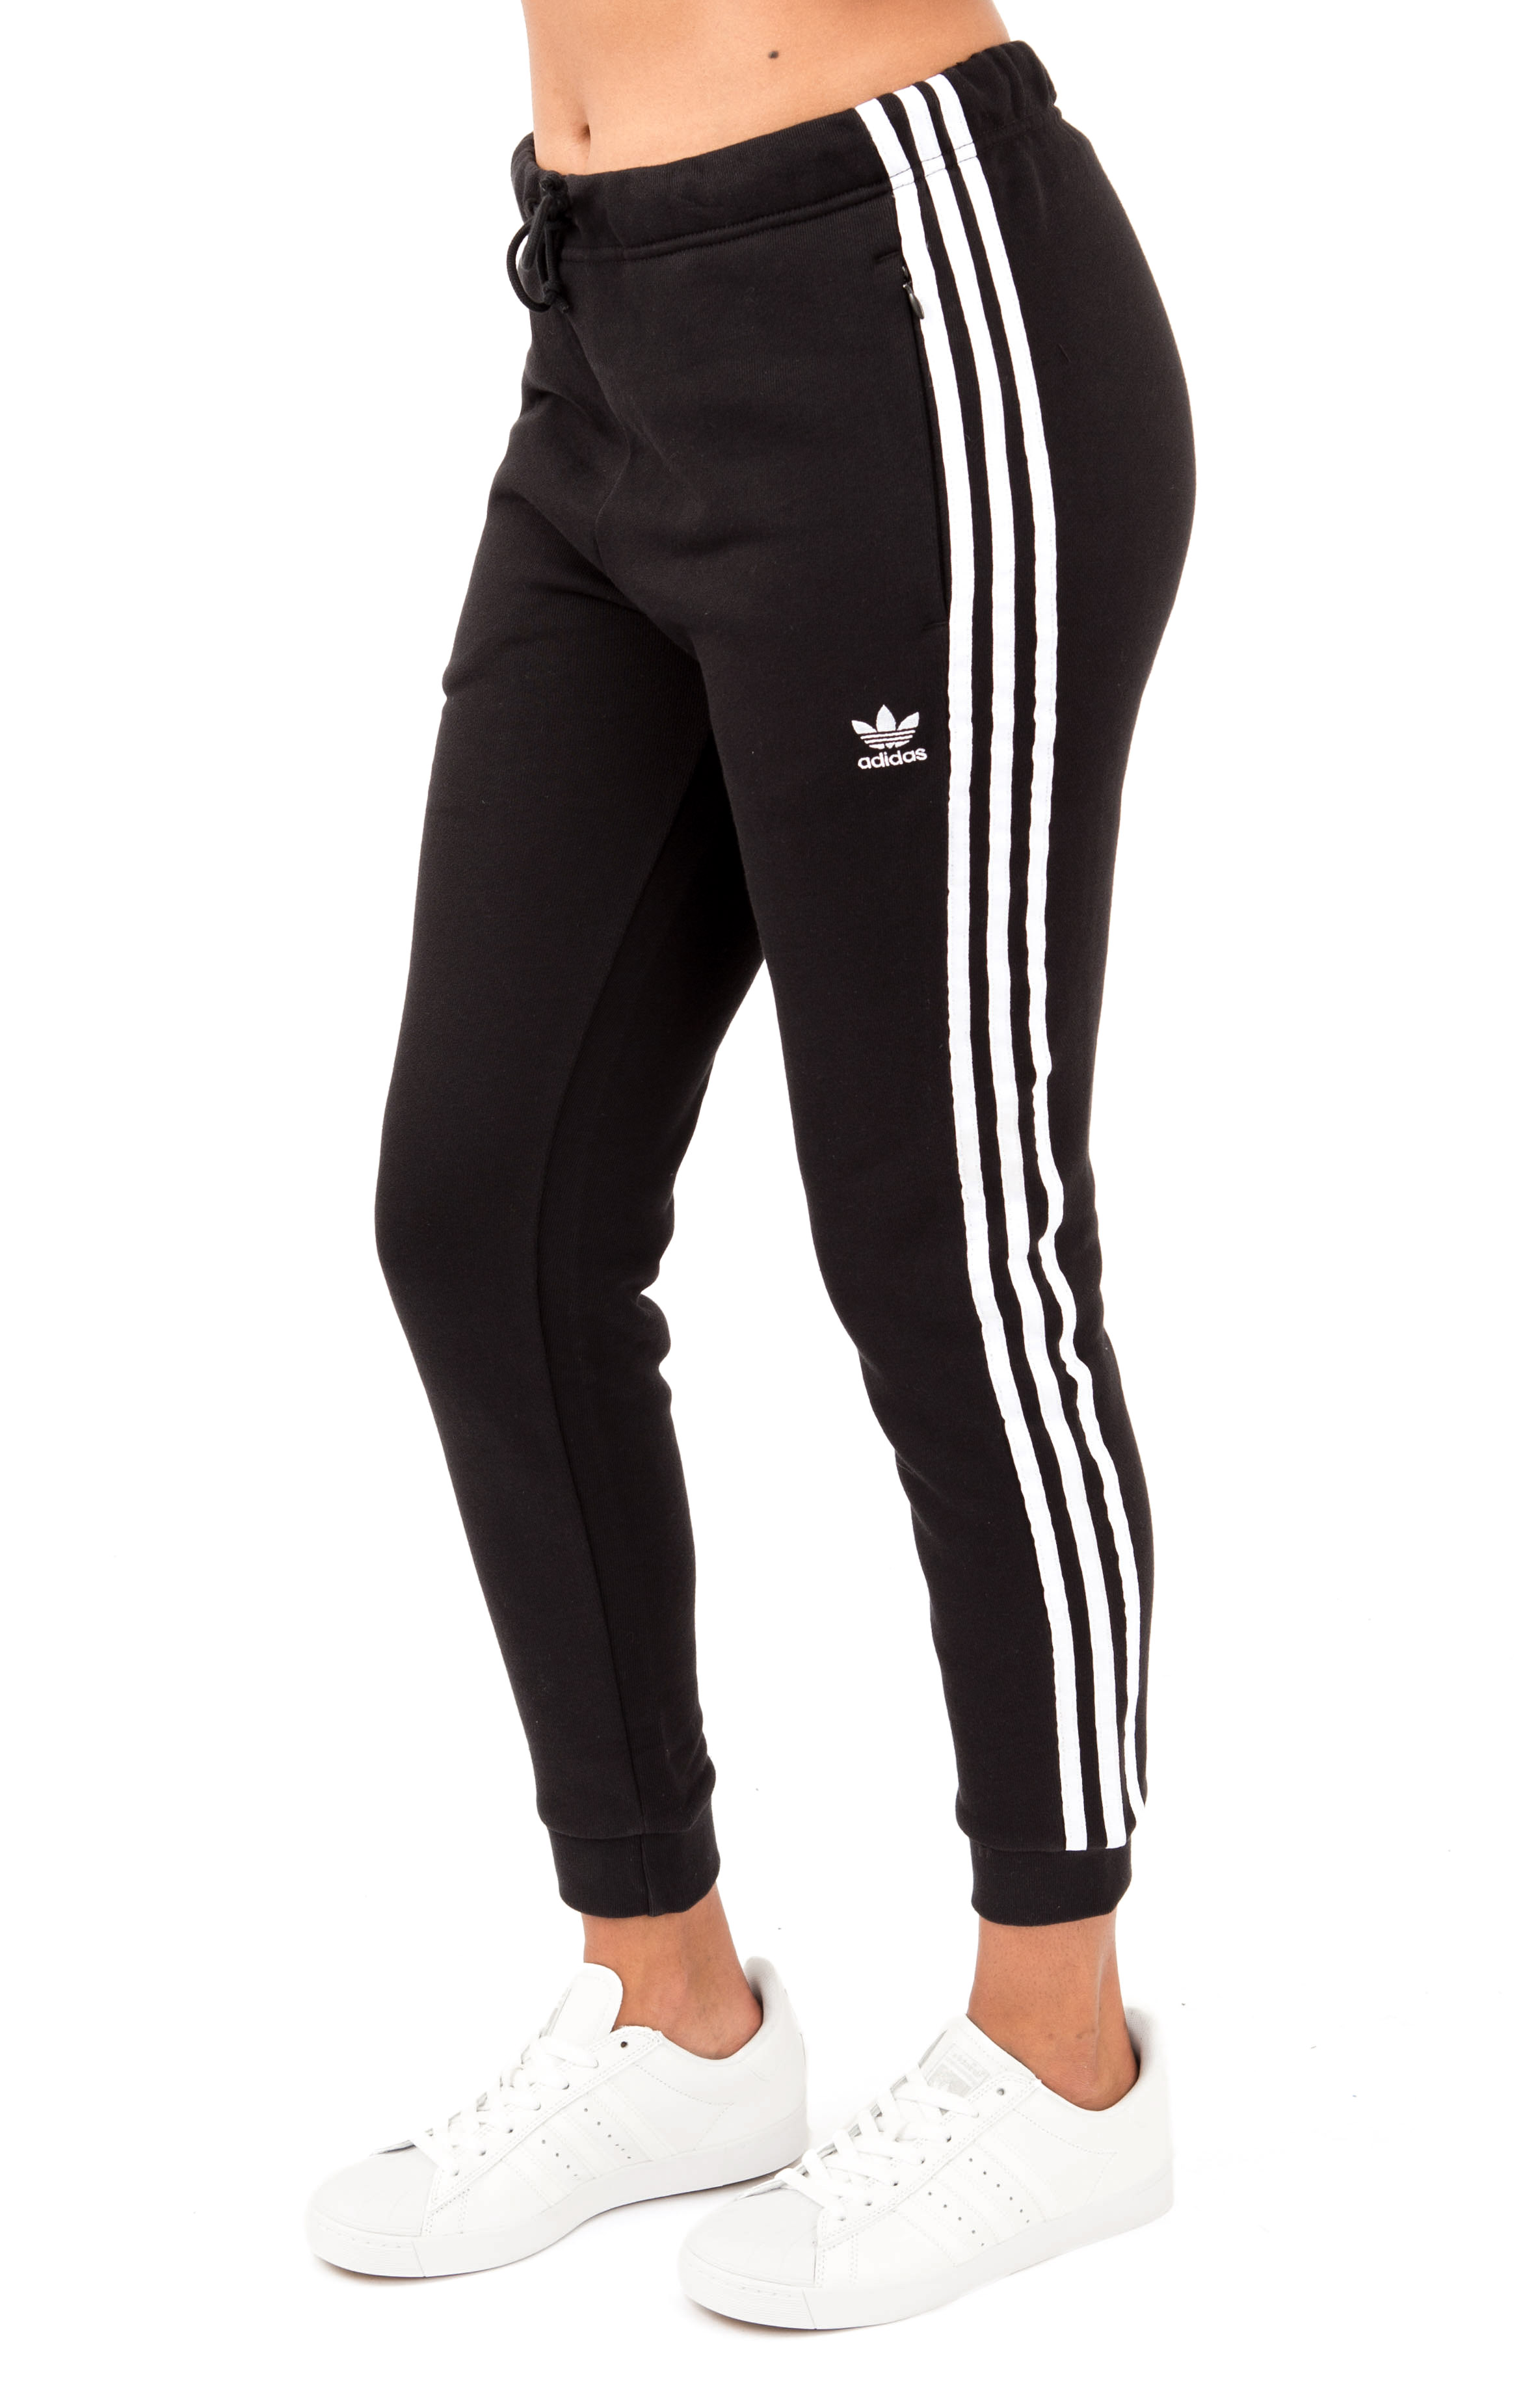 (DH3123) Regular Cuffed Track Pants - Black